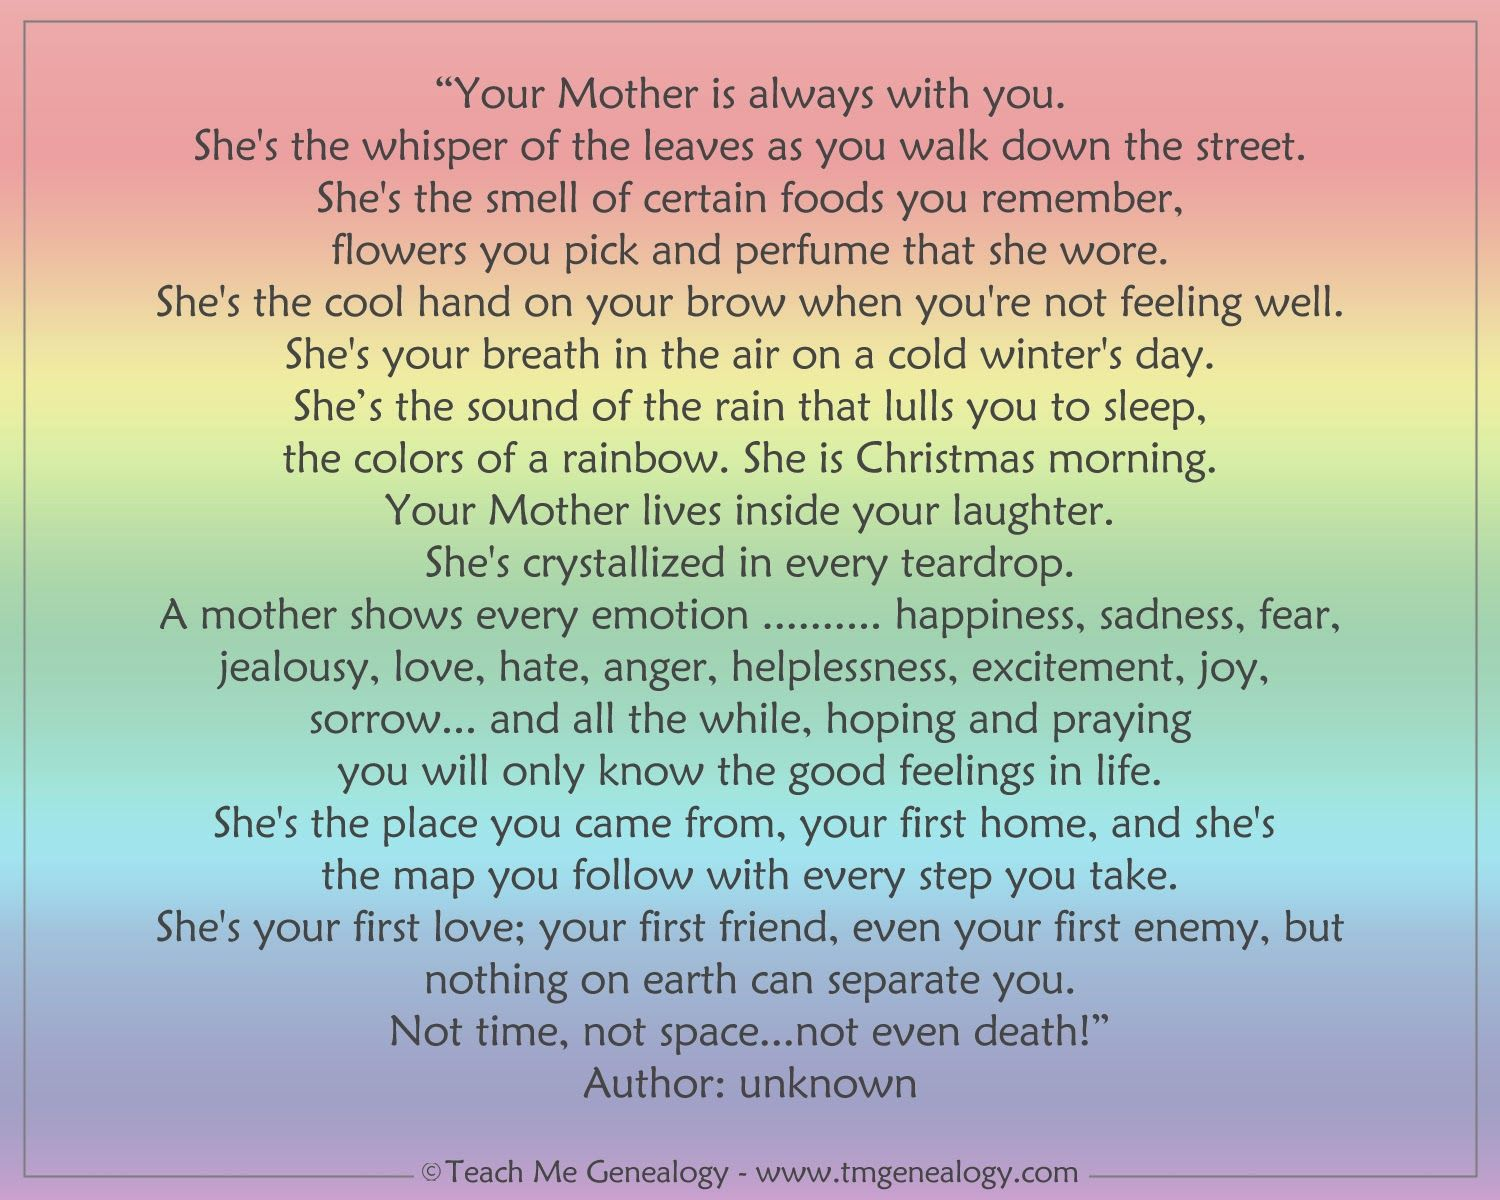 inspiring essays about mothers Celebrate mother's day 2012 with inspirational quotes about mothers read inspiring mother's day quotes from michael jordan, abraham lincoln, oprah winfrey, .